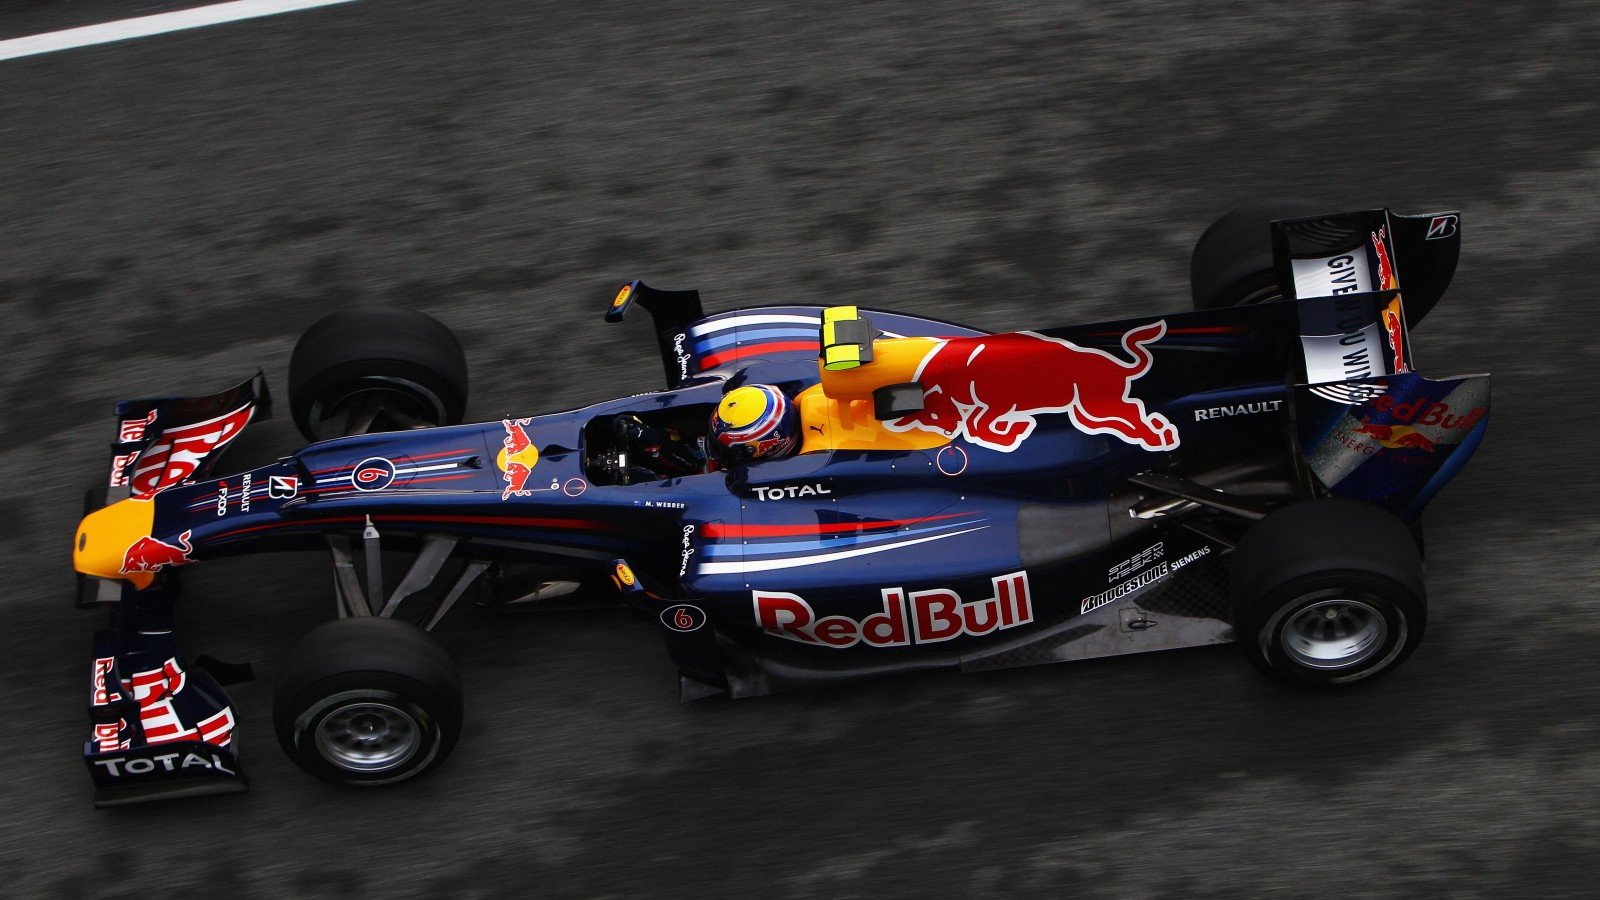 F1 Red Bull Team Wallpaper for Desktop 1600x900